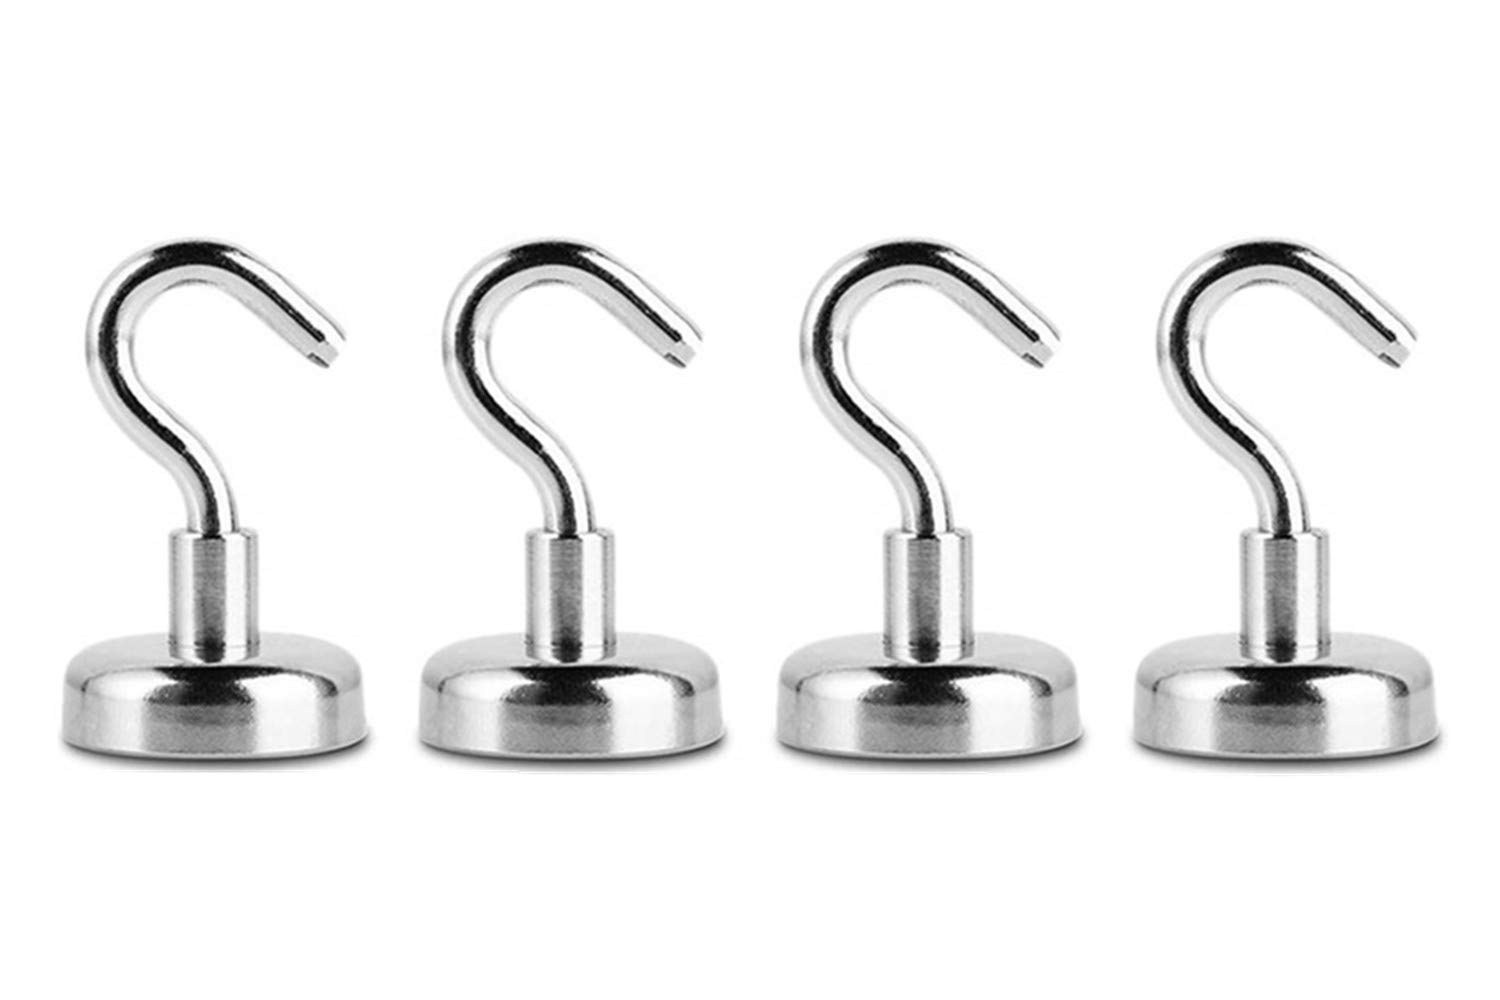 Heavy Duty Magnet Hooks with Strong Neodymium Magnet Hook for Home Pitcircle Magnetic Hooks 15LB-10PCS Office and Garage Workplace Kitchen